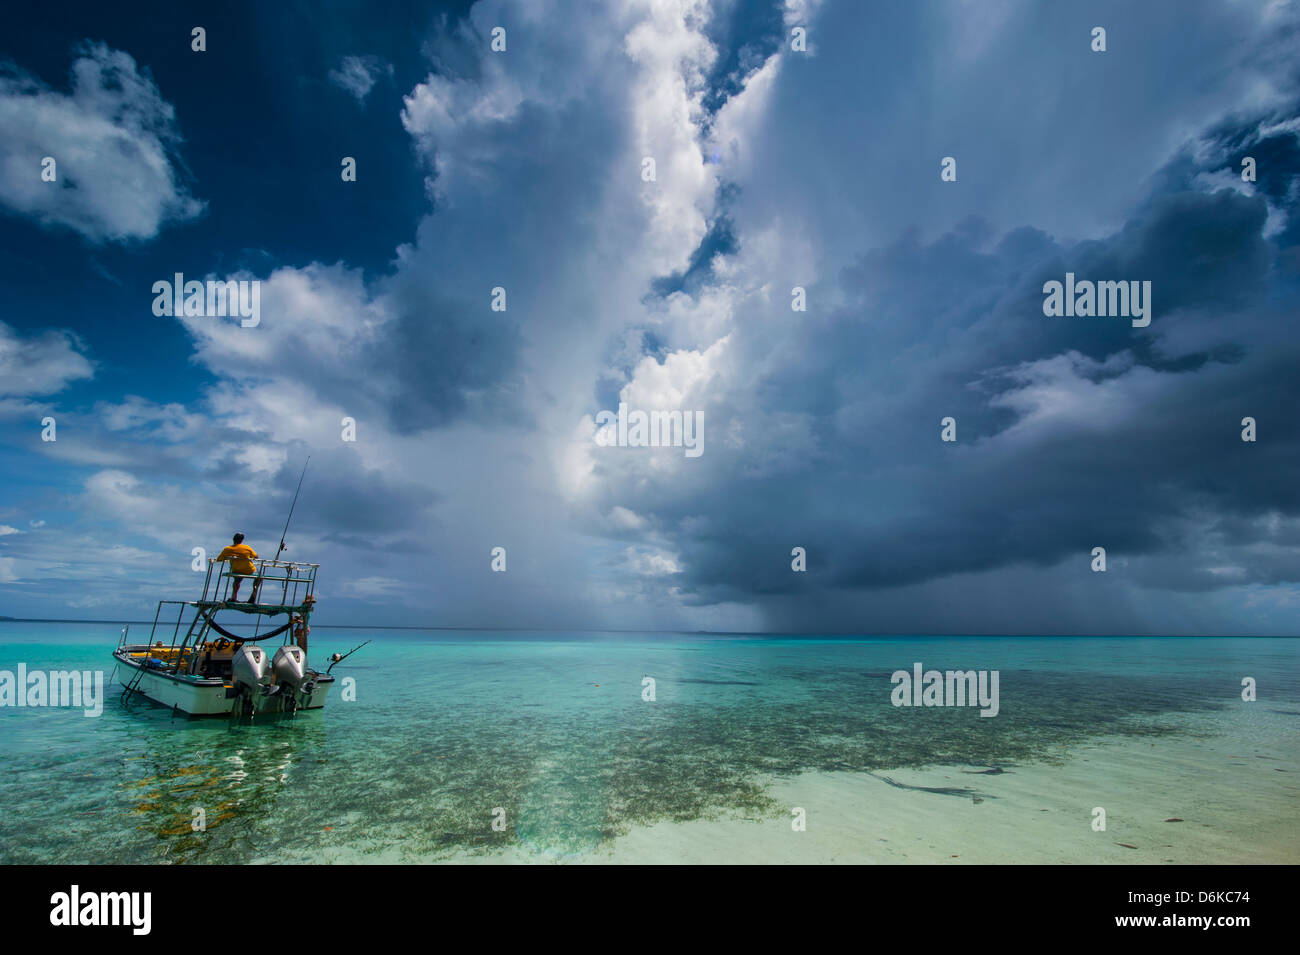 Little motor boat in the turquoise waters of the Ant Atoll, Pohnpei, Micronesia, Pacific - Stock Image